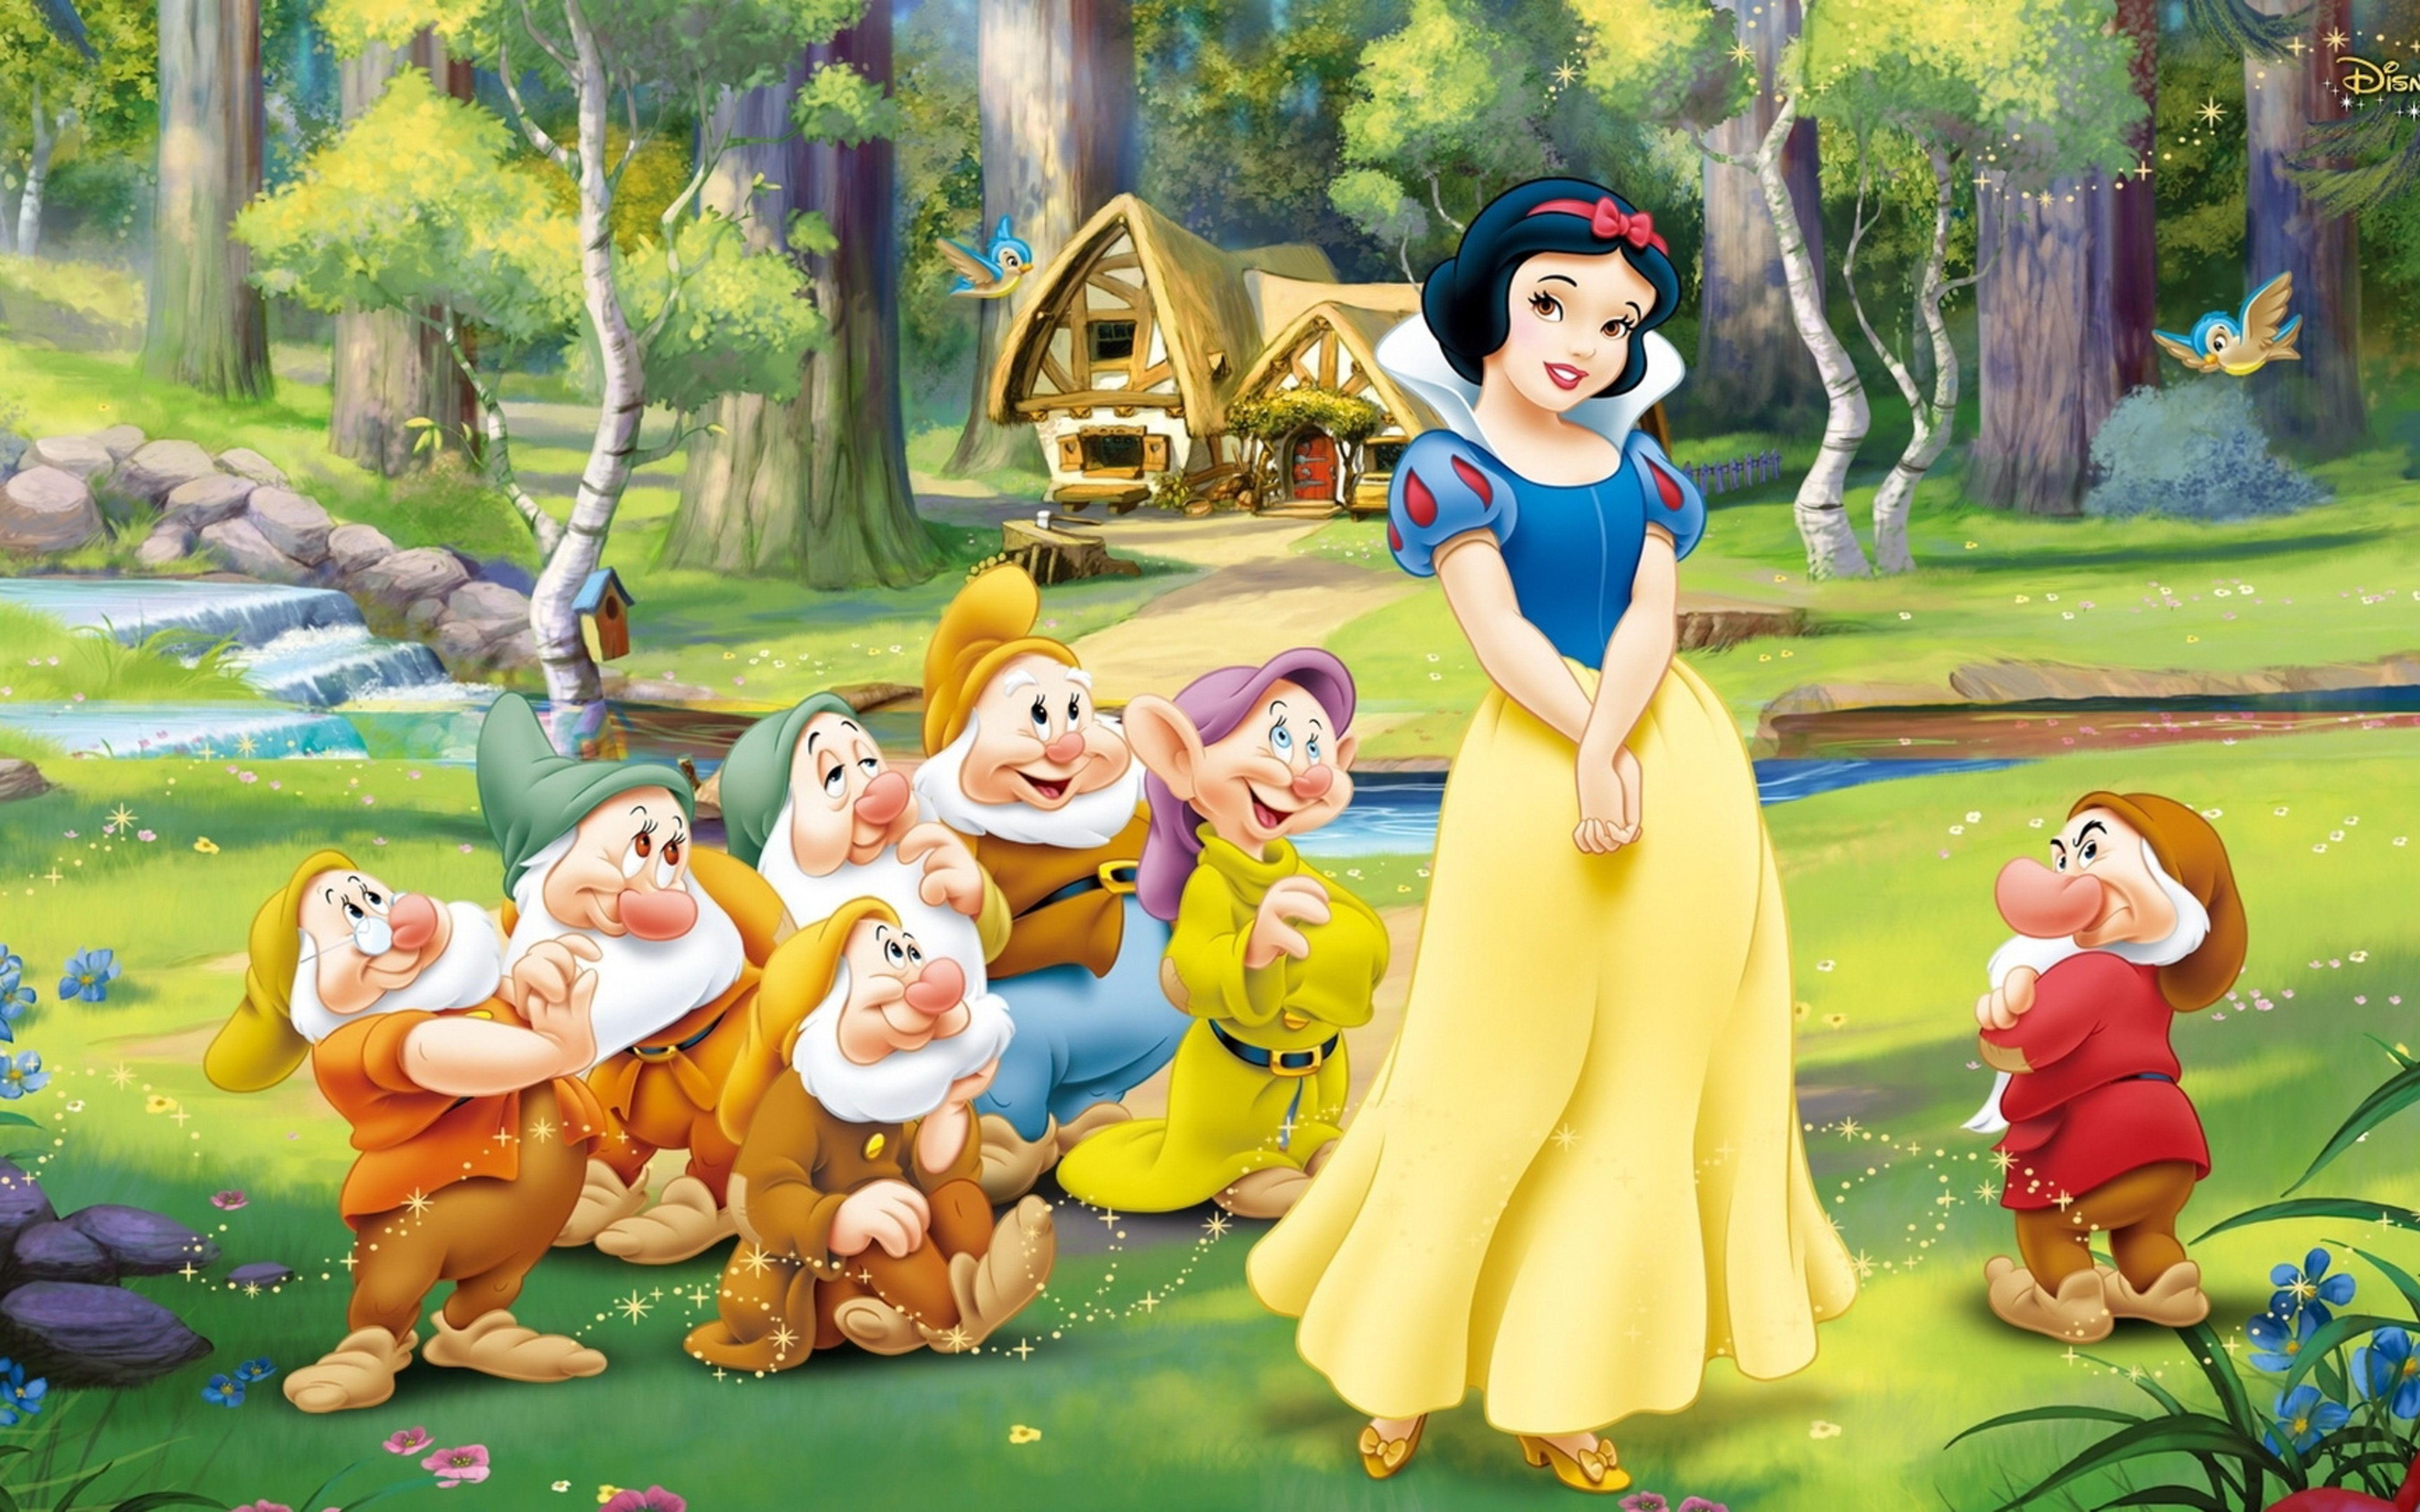 wallpaper download 5120x3200 snow white and the seven dwarfs - 3d